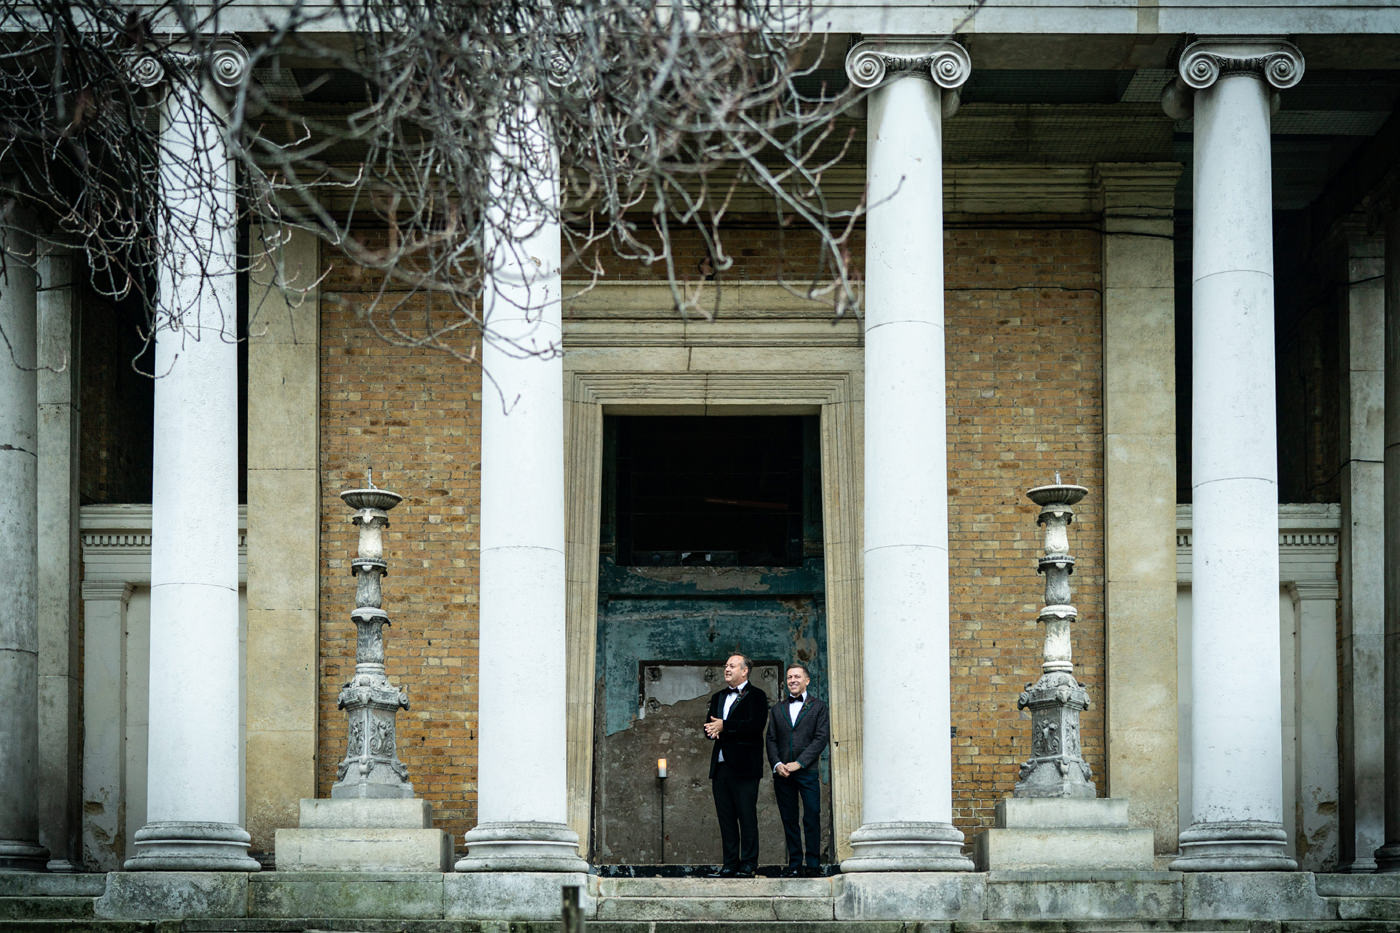 Two Grooms prepare to greet their wedding guests at The Asylum Chapel Peckham